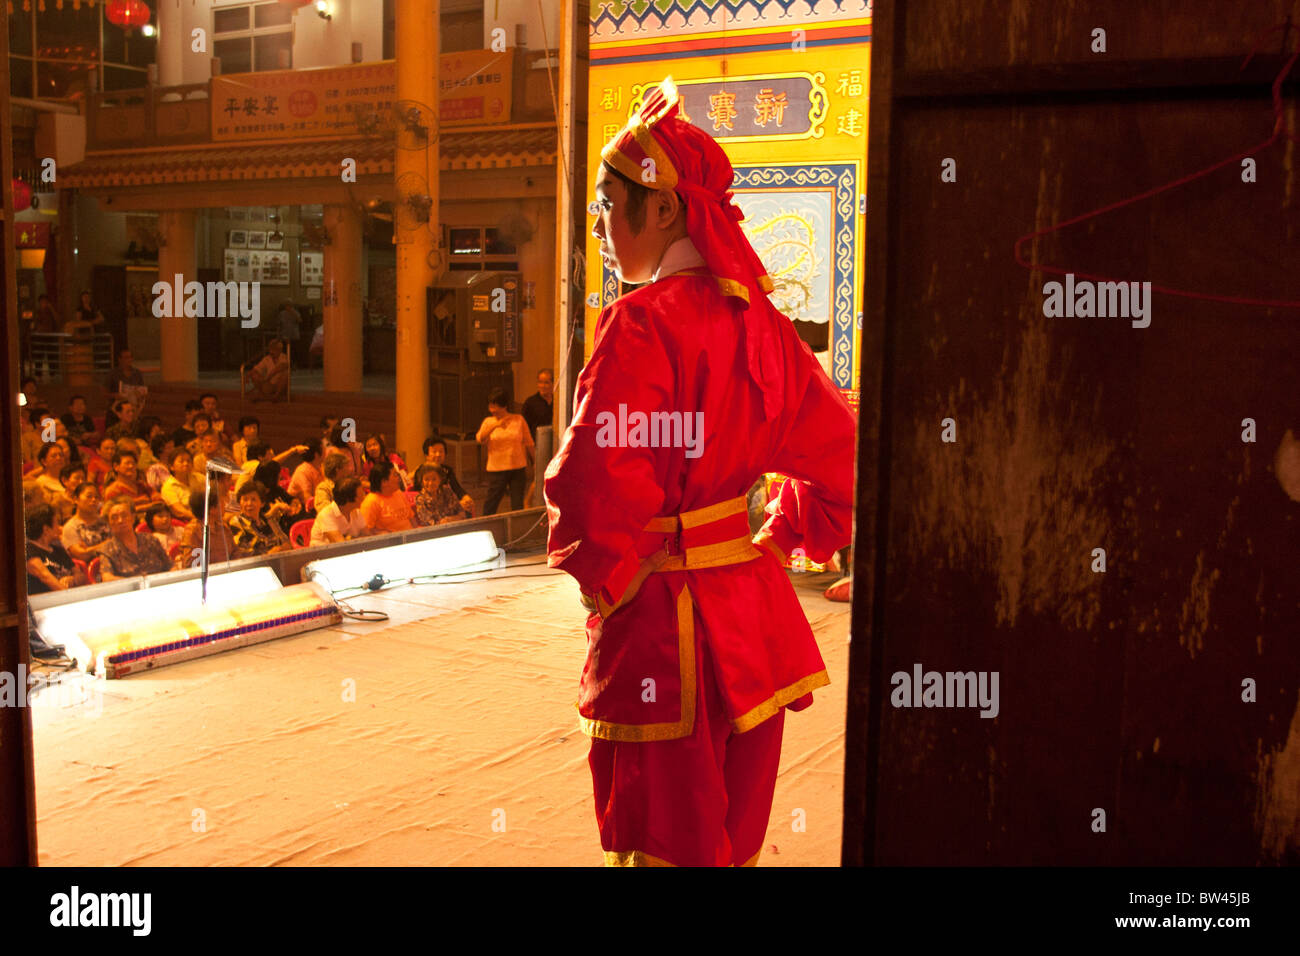 Members of the audience watch a performance by the Sing Sai Hong troupe, the oldest Hokkien opera troupe in Singapore. - Stock Image